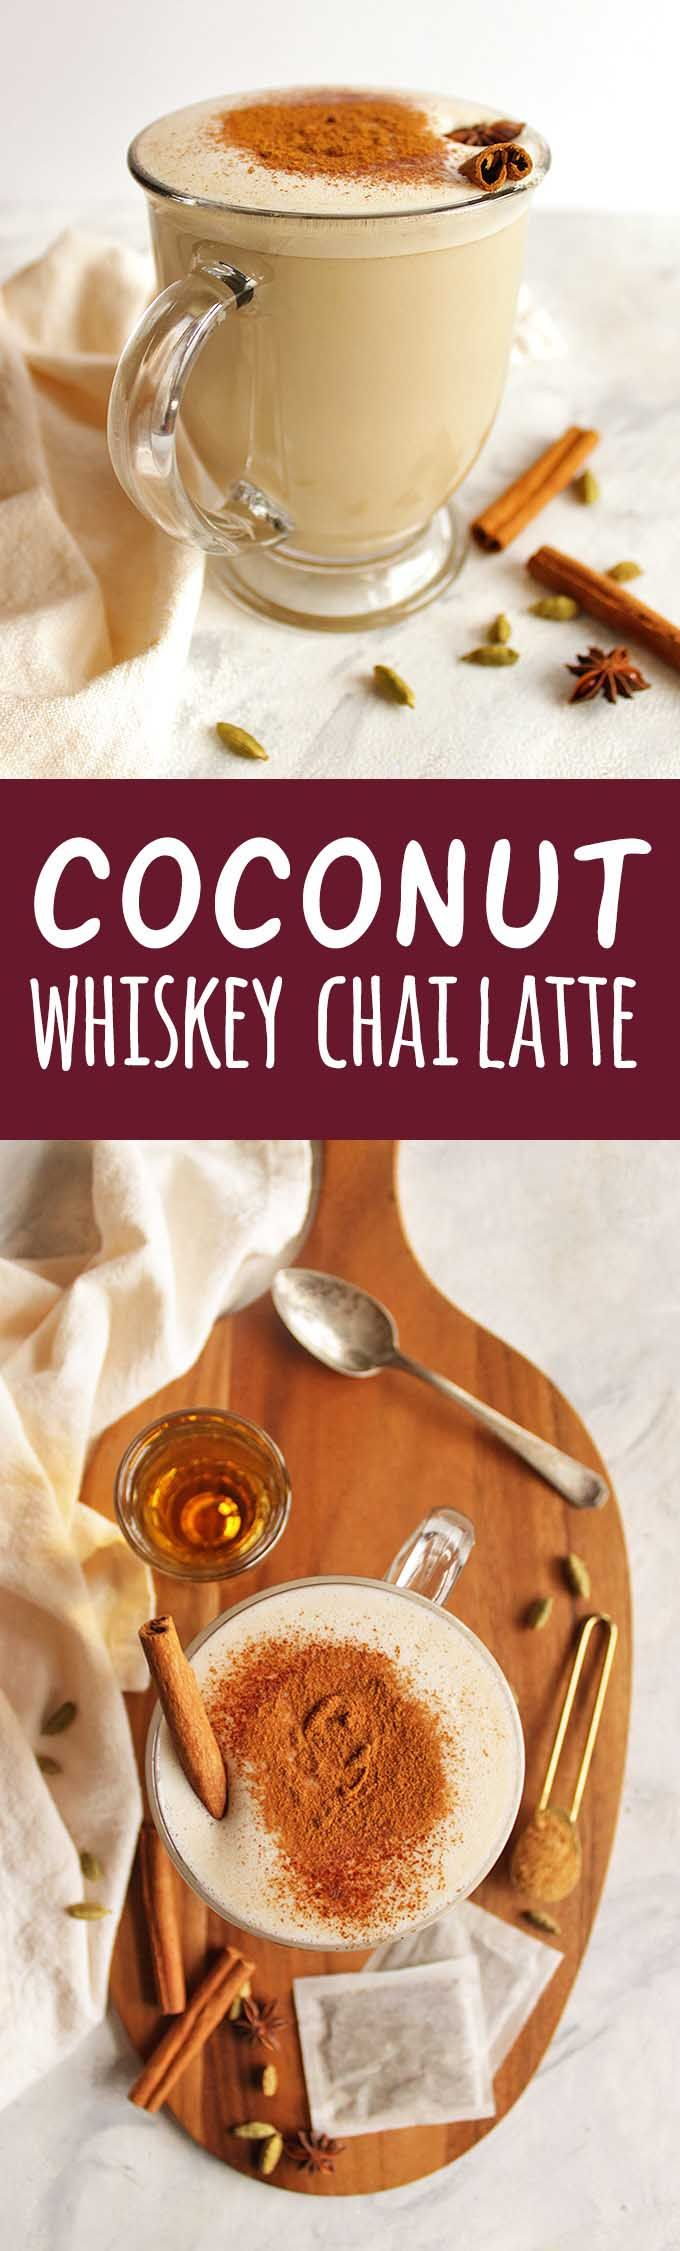 Coconut Whiskey Chai Latte | Recipe | Gluten free drinks ...